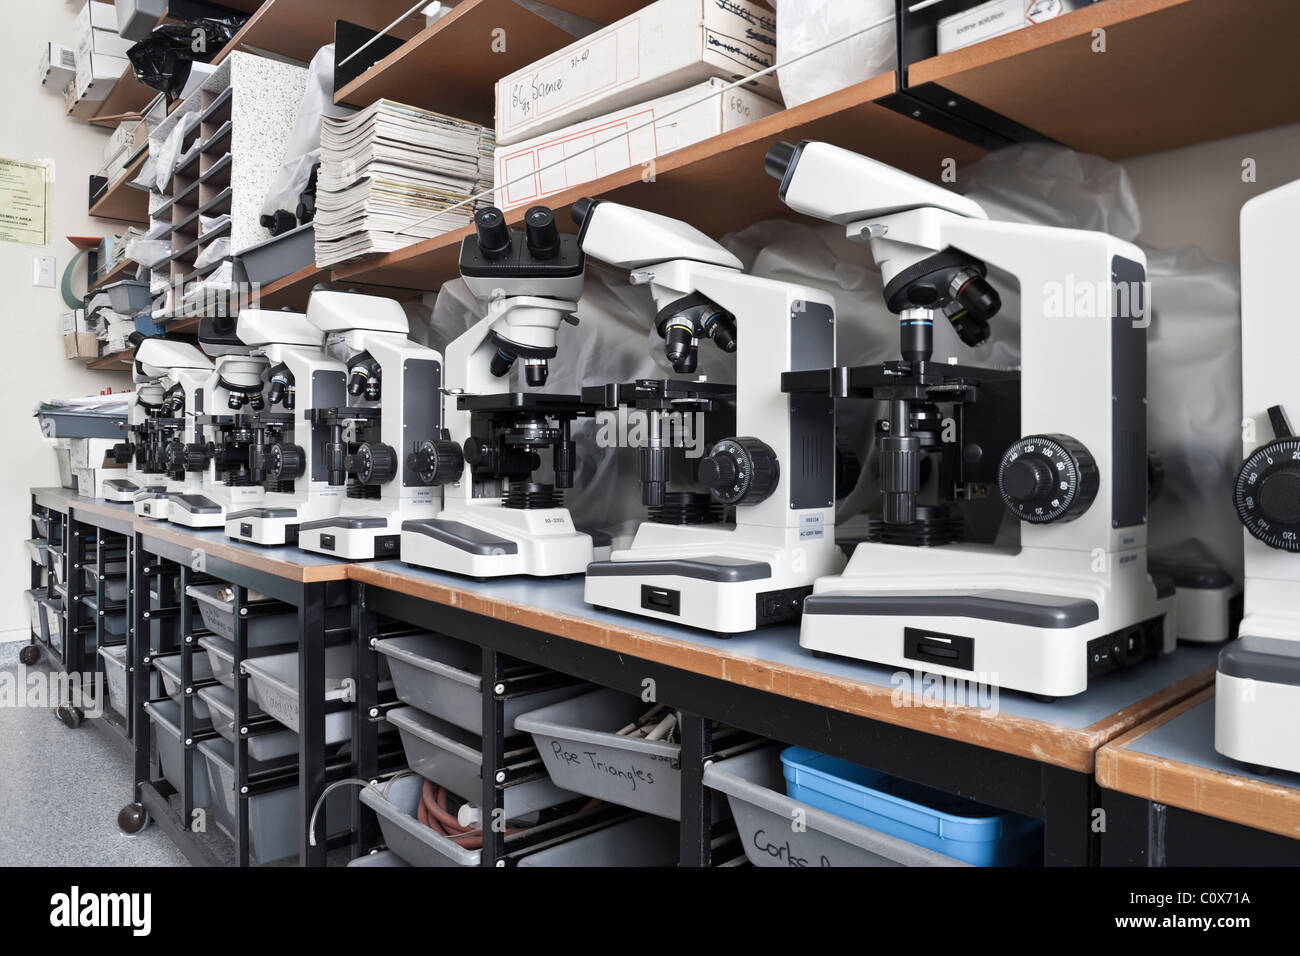 Row of microscopes in school biology store. Logos removed. - Stock Image